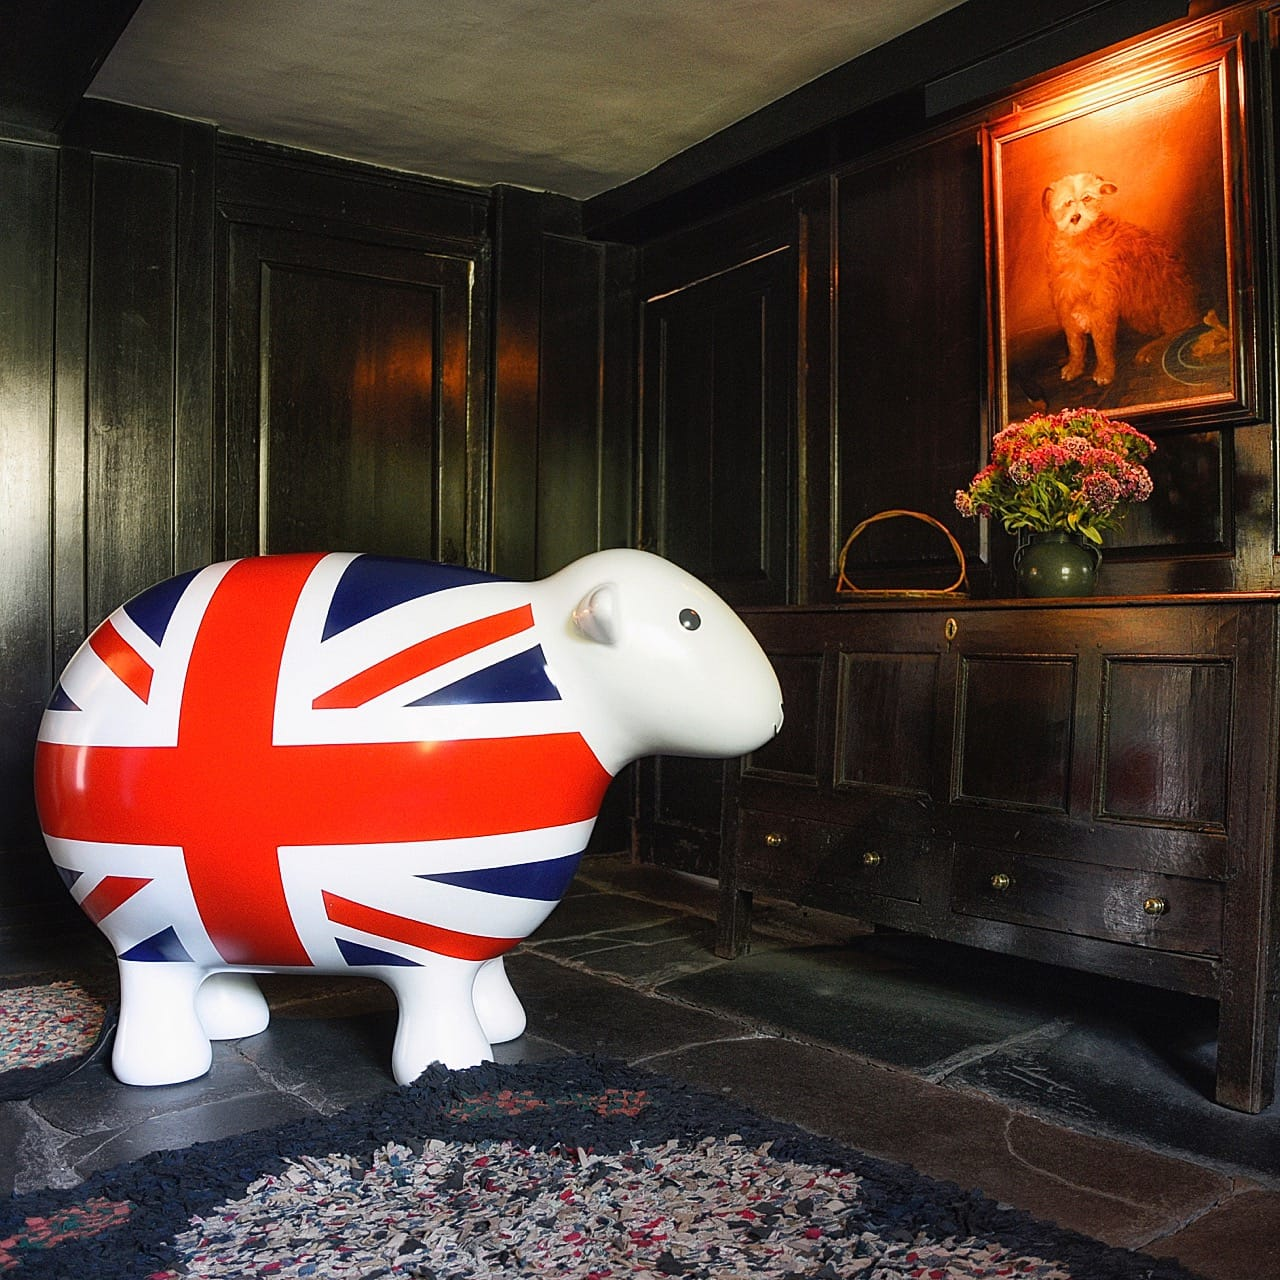 Giant GB Herdy inside Dove Cottage and its wooden clad walls and antique furniture, looking at a portrait painting of a dog